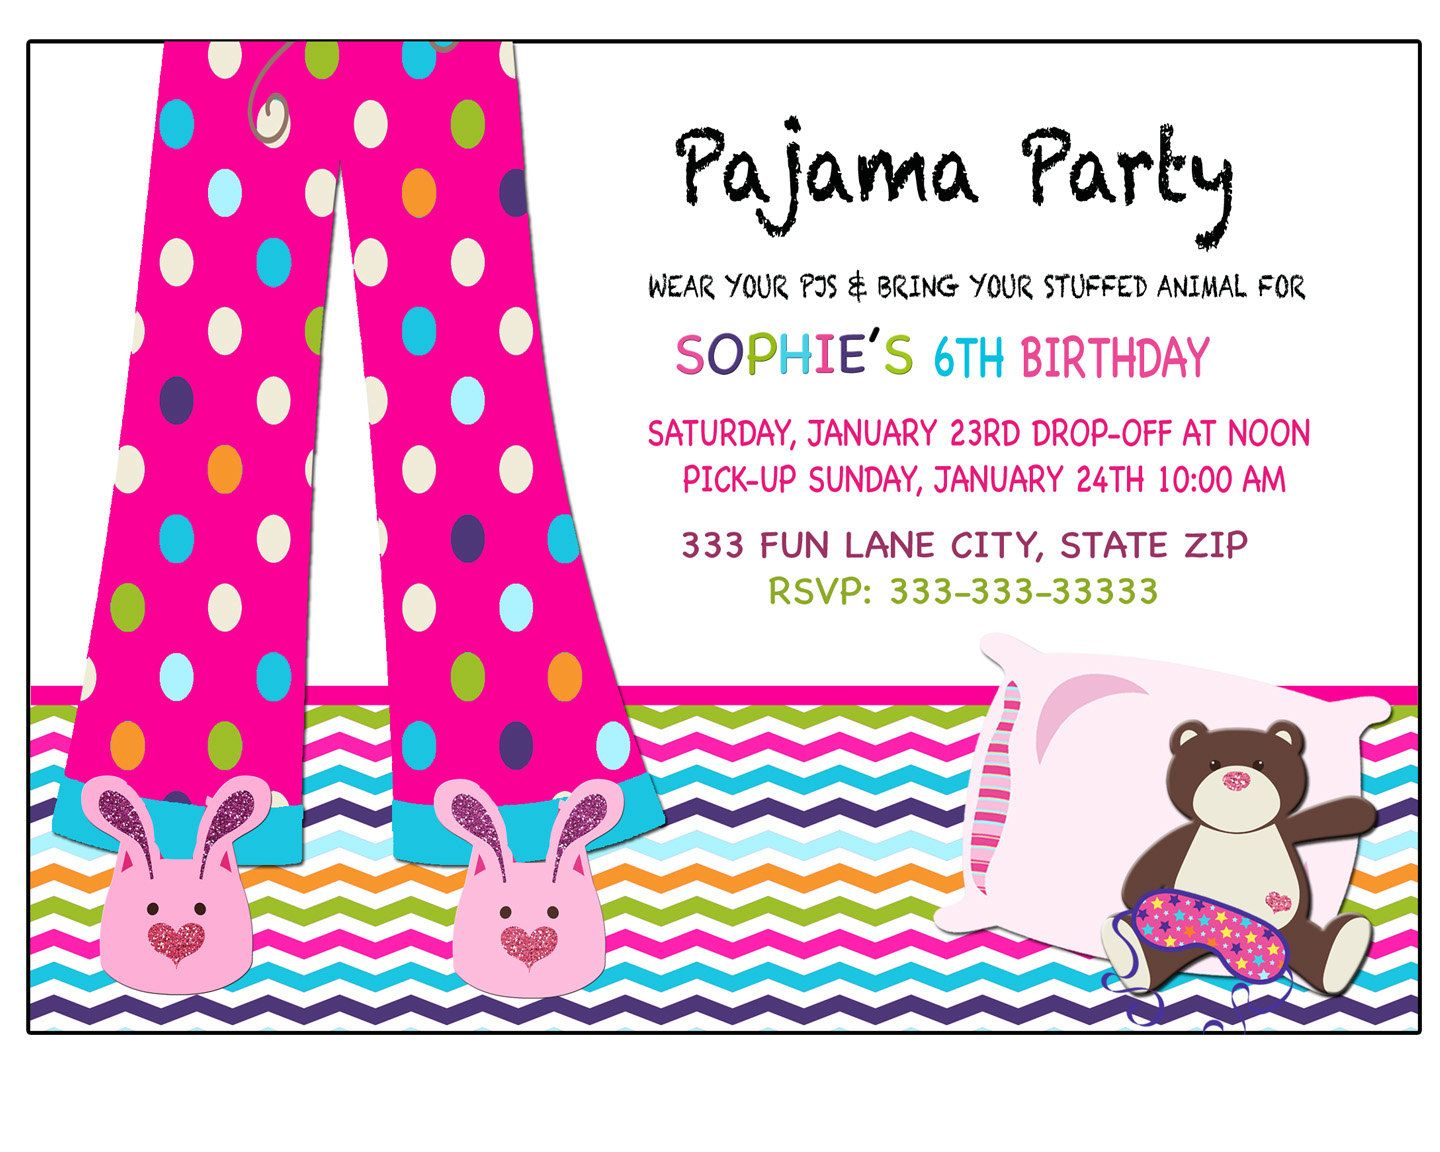 Sleepover invitation, Pajama party, invitation, Sleepover party ...